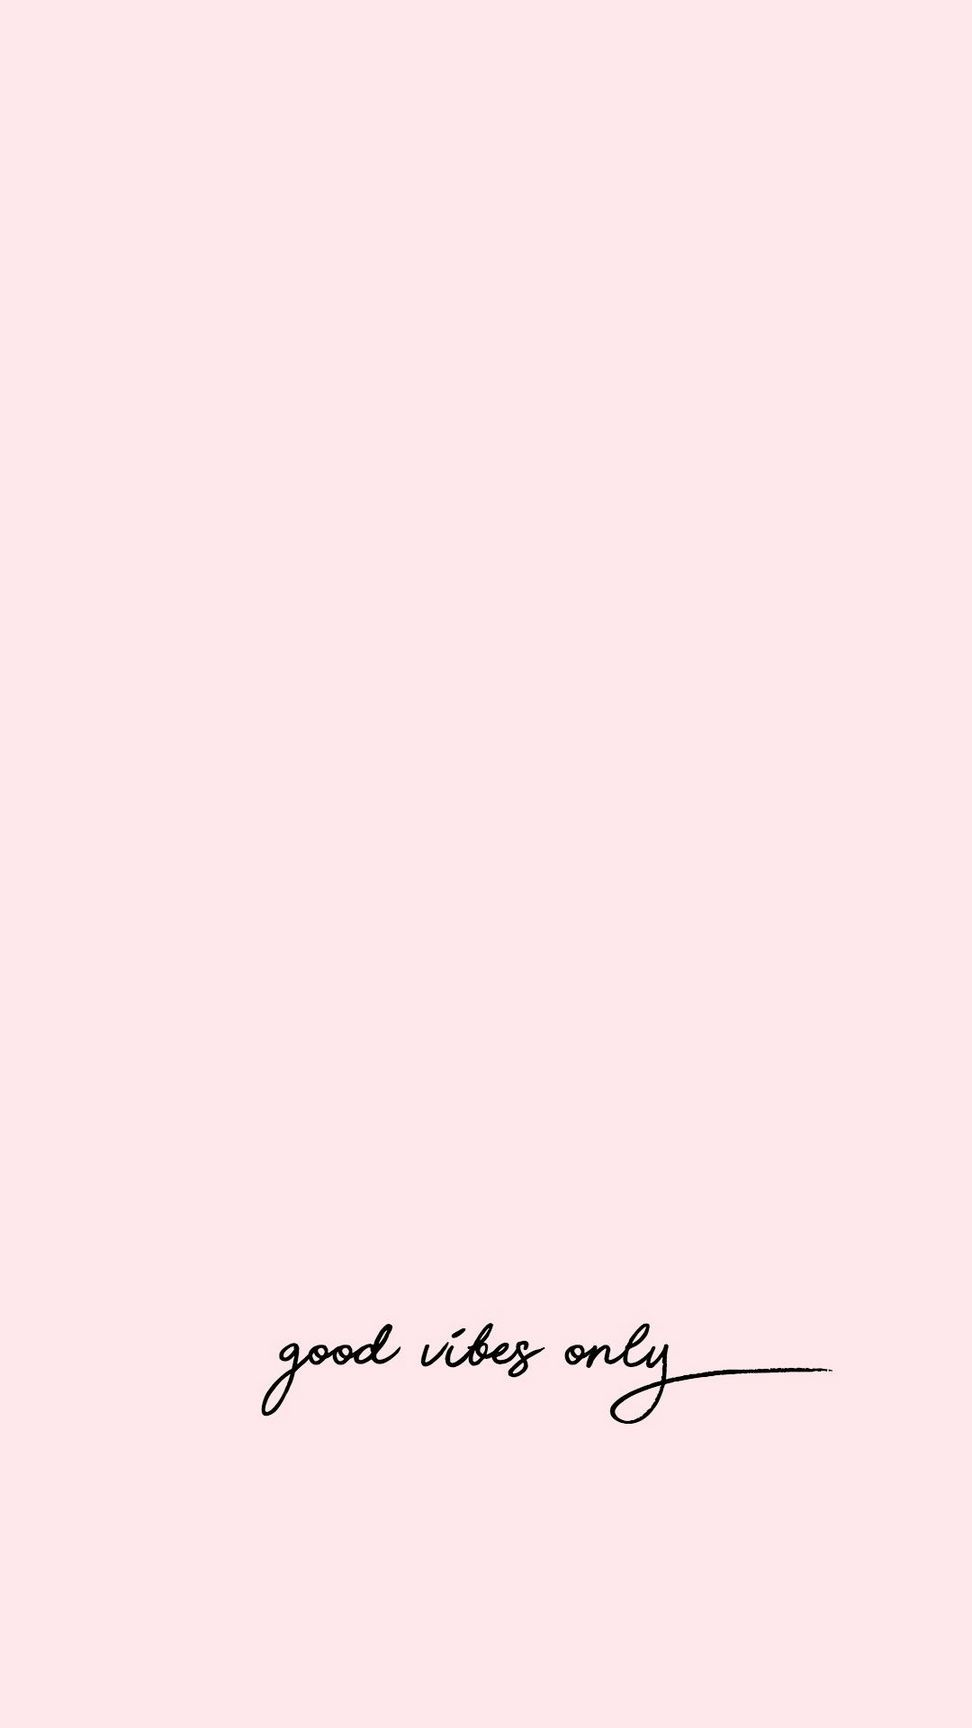 You Are Able To Even Make Your Own Collection And Keep The Wallpapers You Want In 1 Pla Wallpaper Iphone Quotes Free Phone Wallpaper Aesthetic Iphone Wallpaper